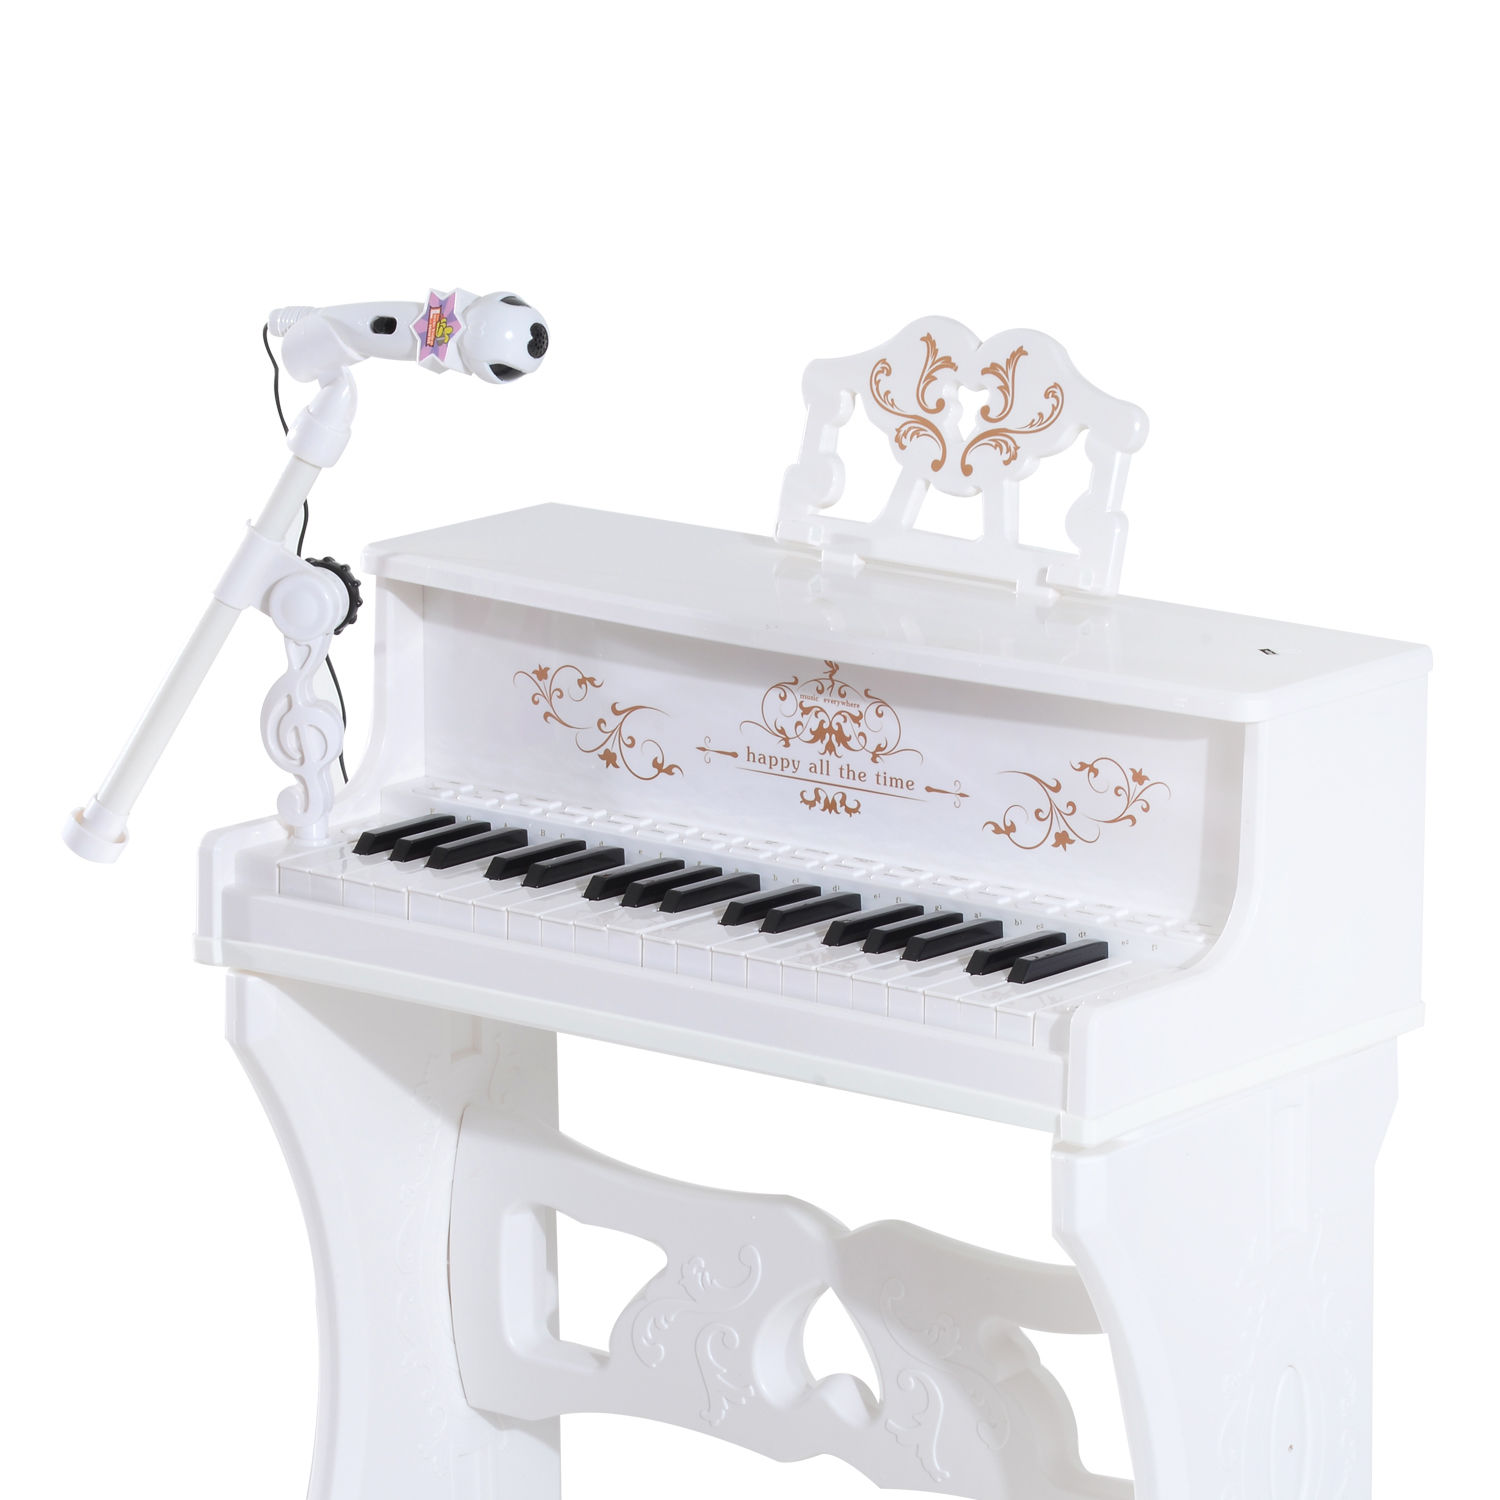 37-32-Key-Kids-Electronic-Keyboard-Mini-Grand-Piano-Stool-Microphone-Musical-Toy thumbnail 55